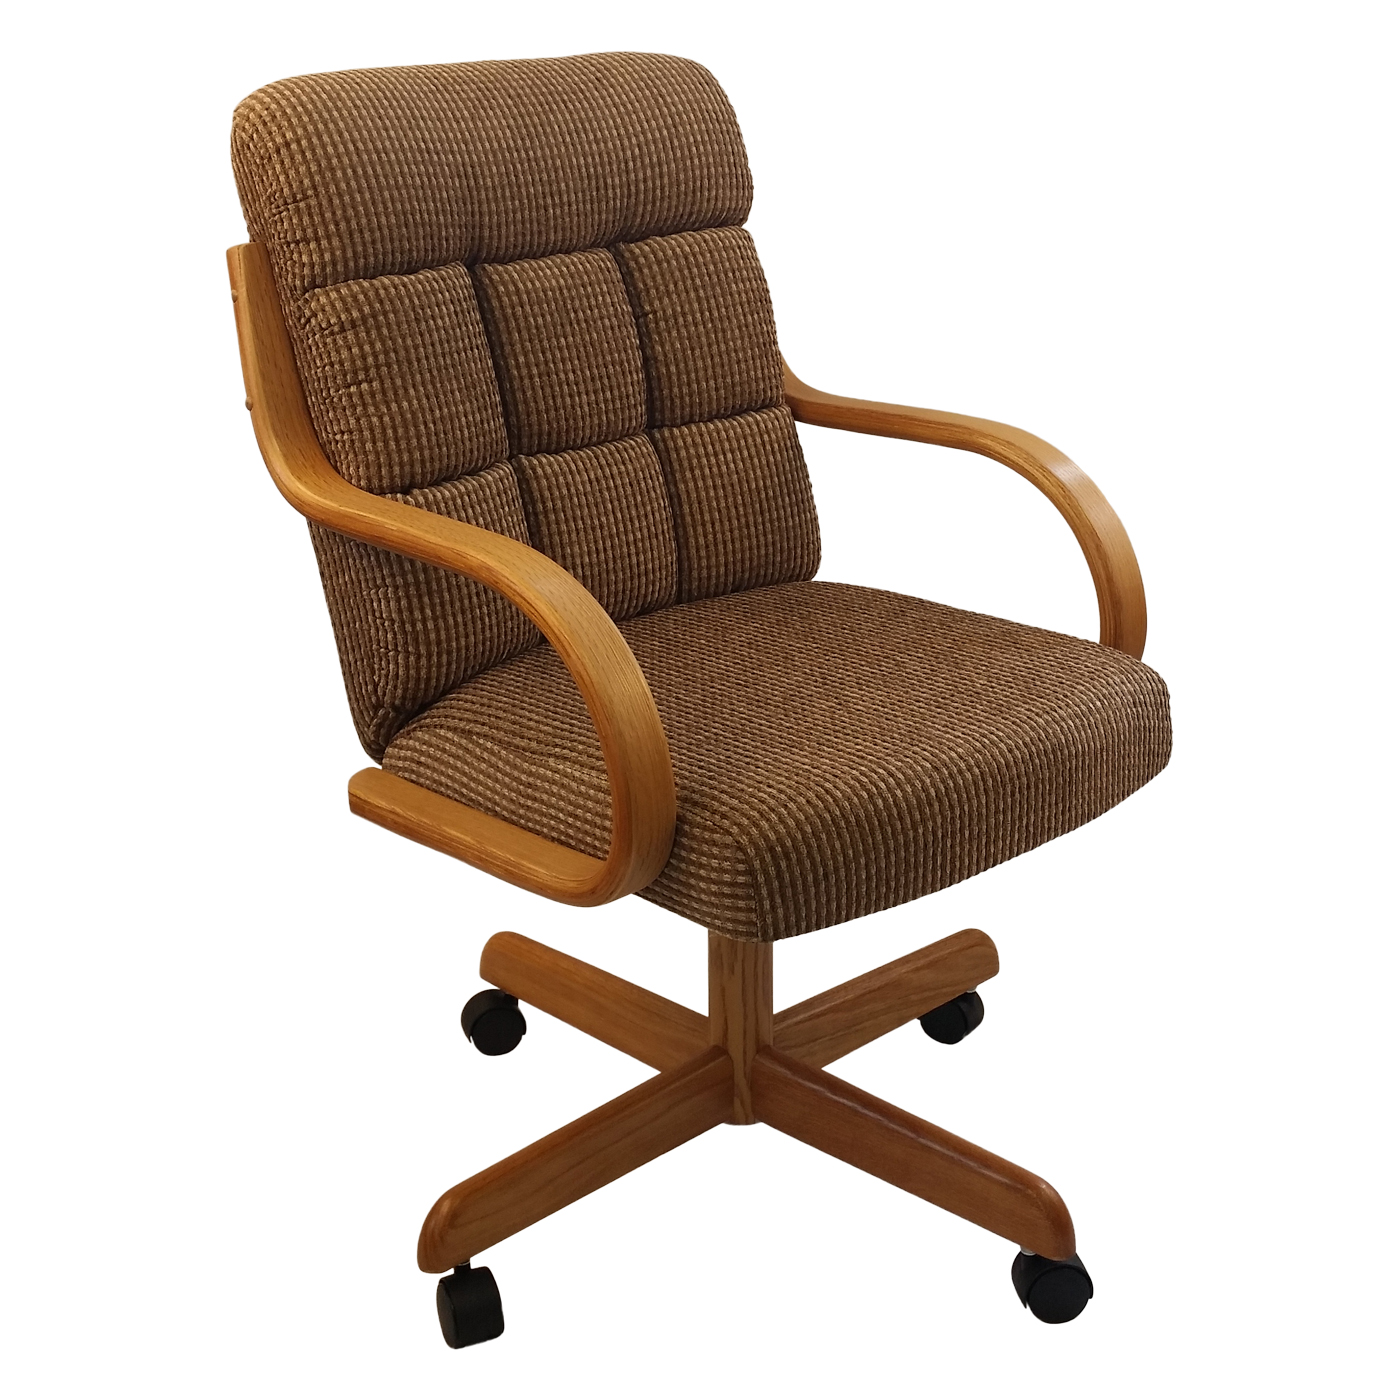 Caster Chair Company C118 Arlington Swivel Tilt Caster Arm Chair Caramel Tweed Fabric (Set of  sc 1 st  Caster Chair Company Replacement Swivel & Caster Chairs